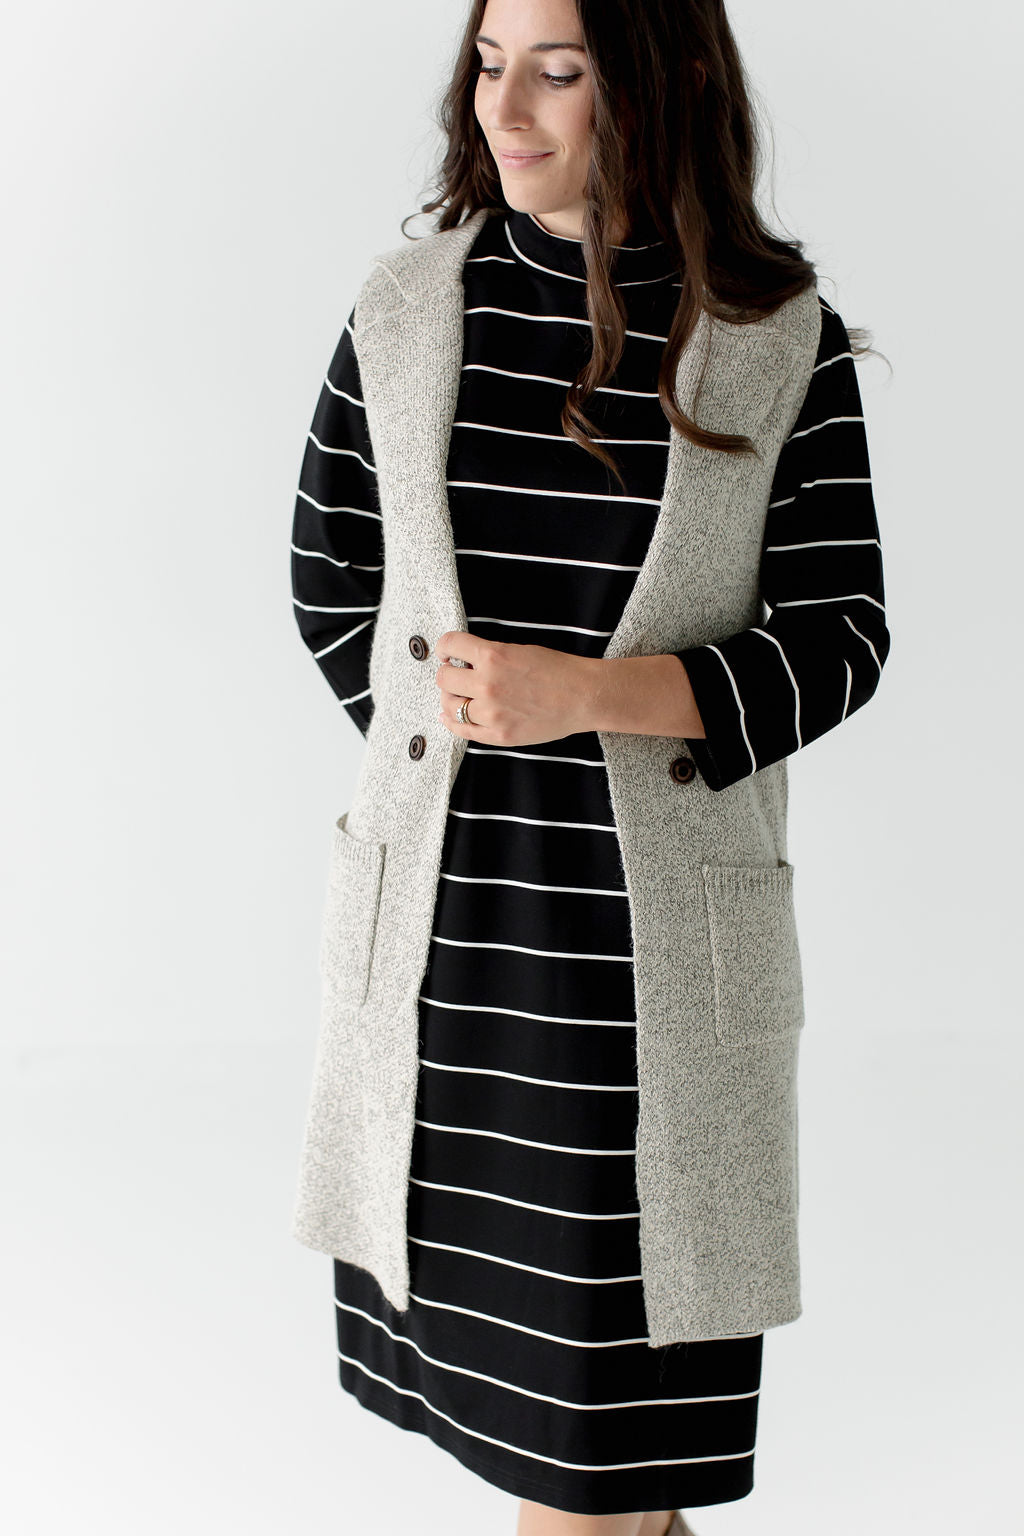 Woven Duster Vest in Taupe